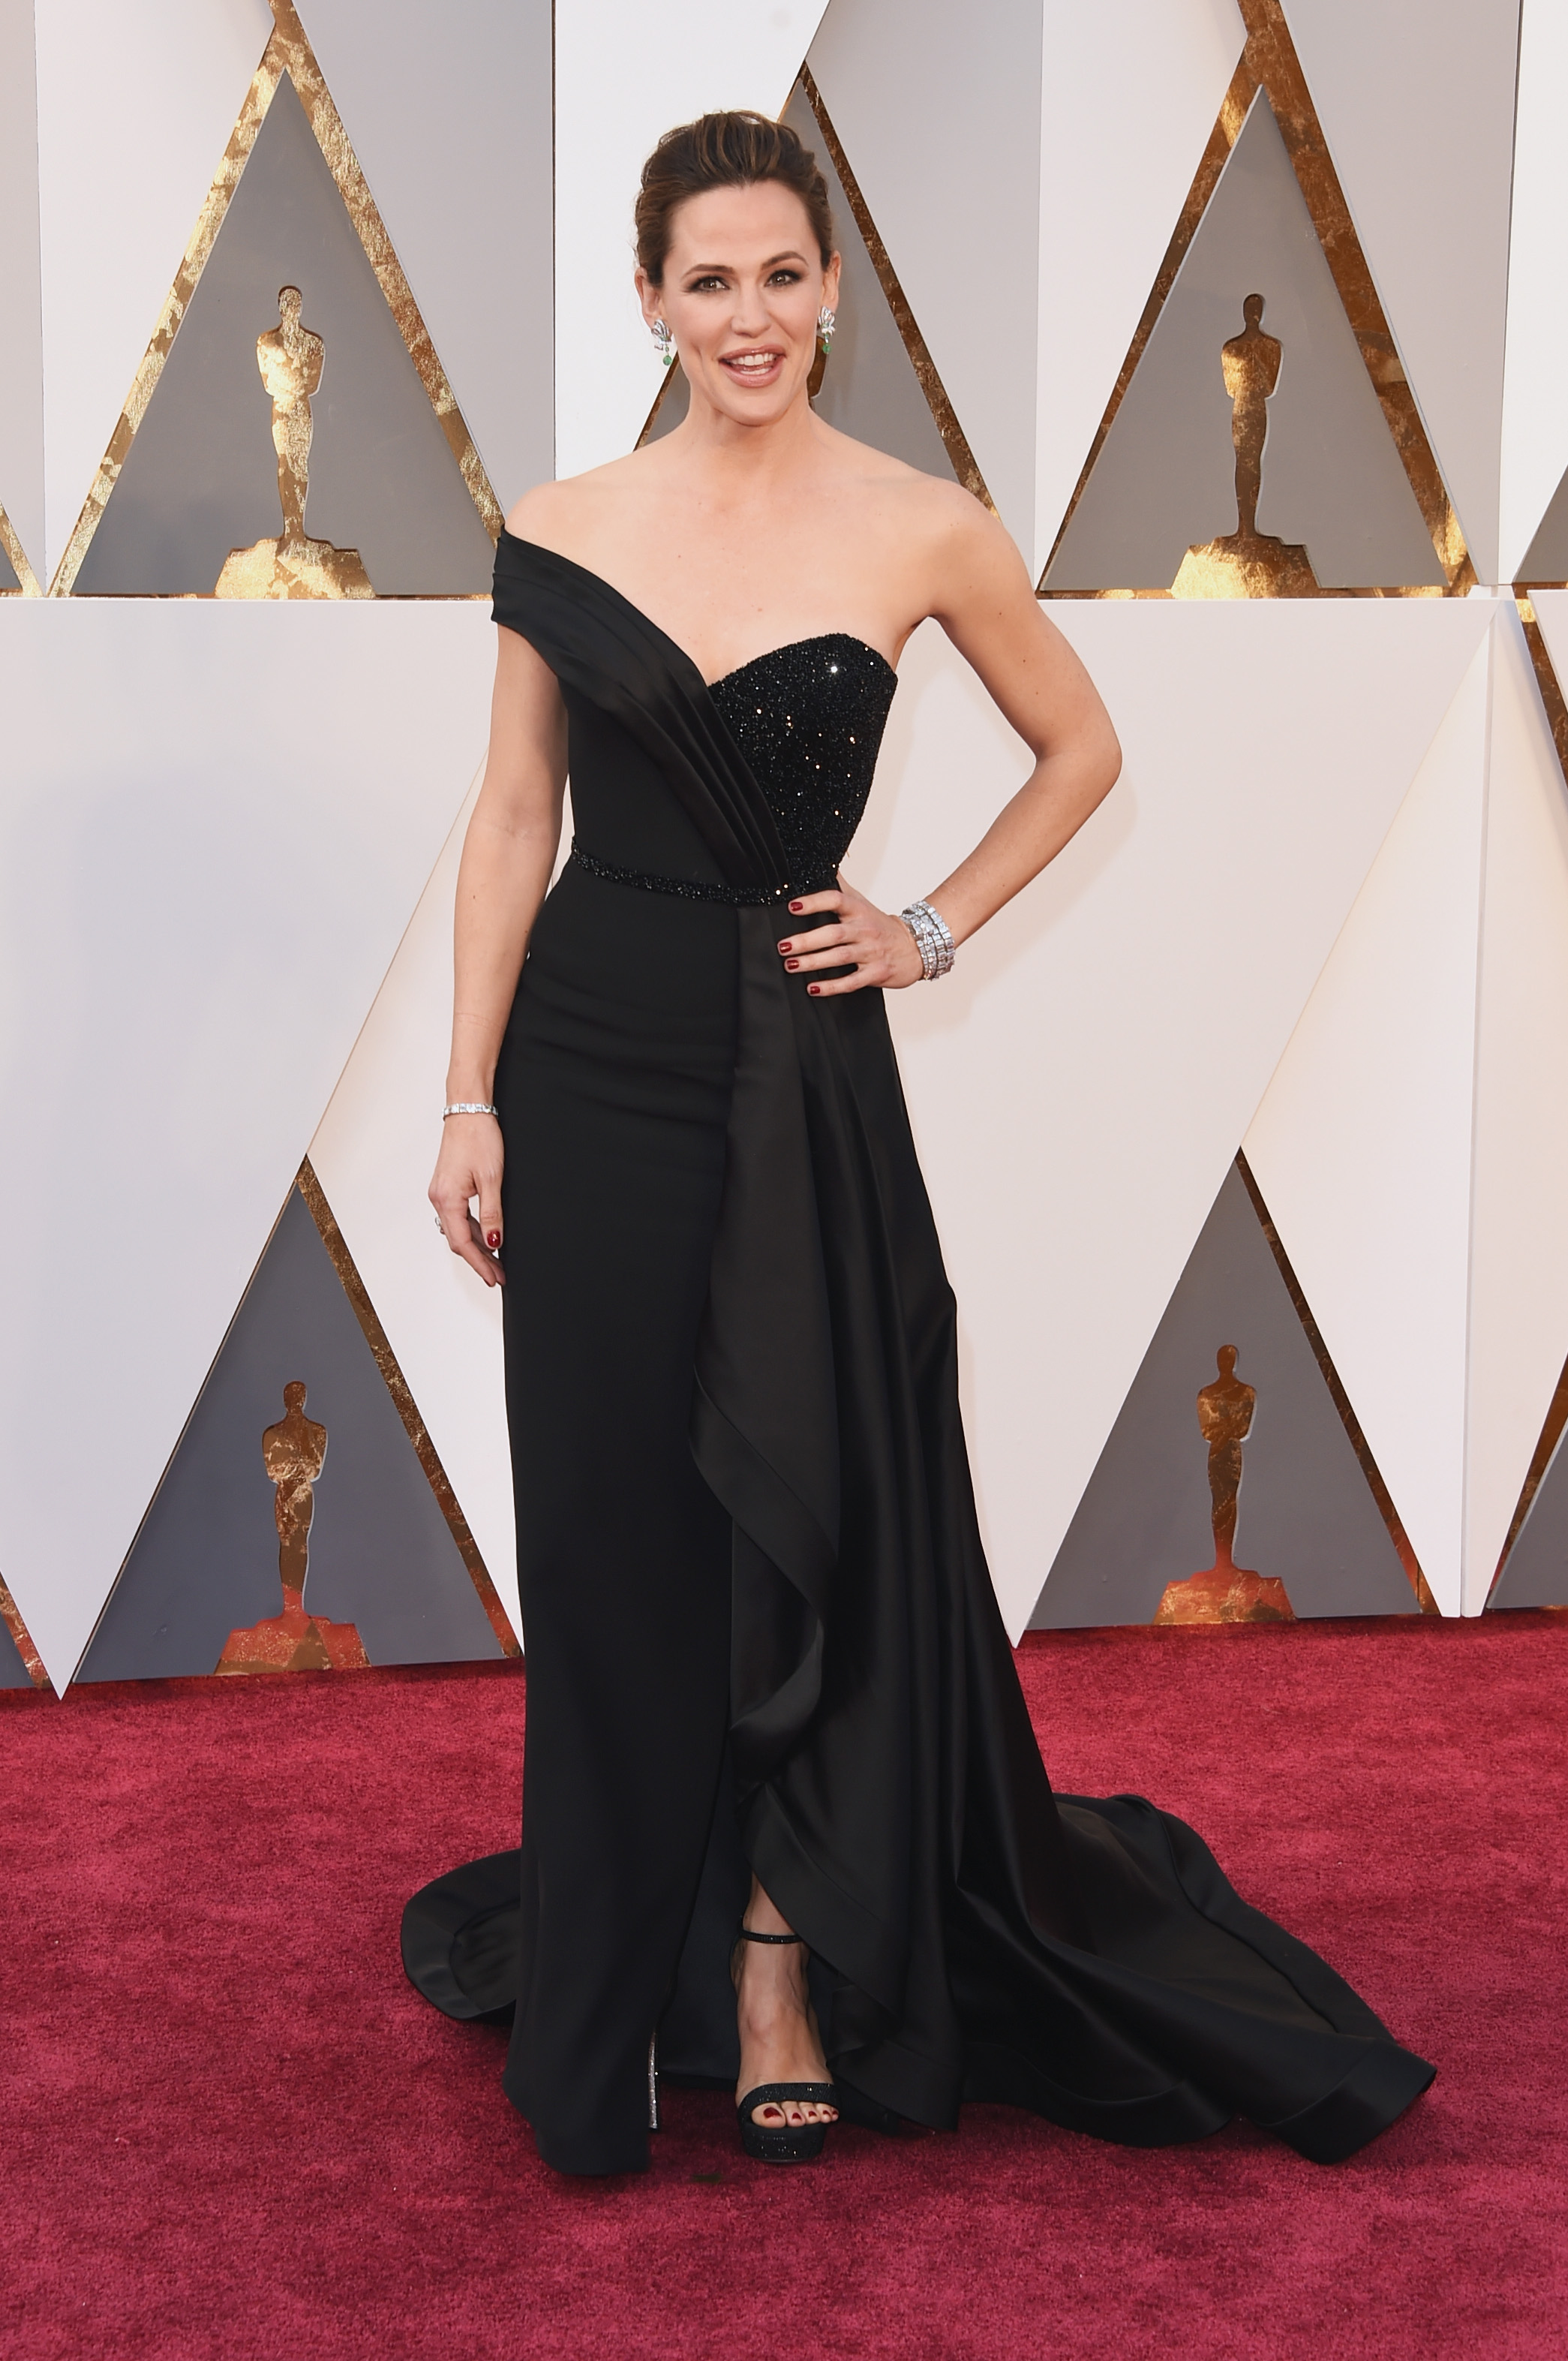 Jennifer Garner's Oscar dress involved a corset bathroom nightmare